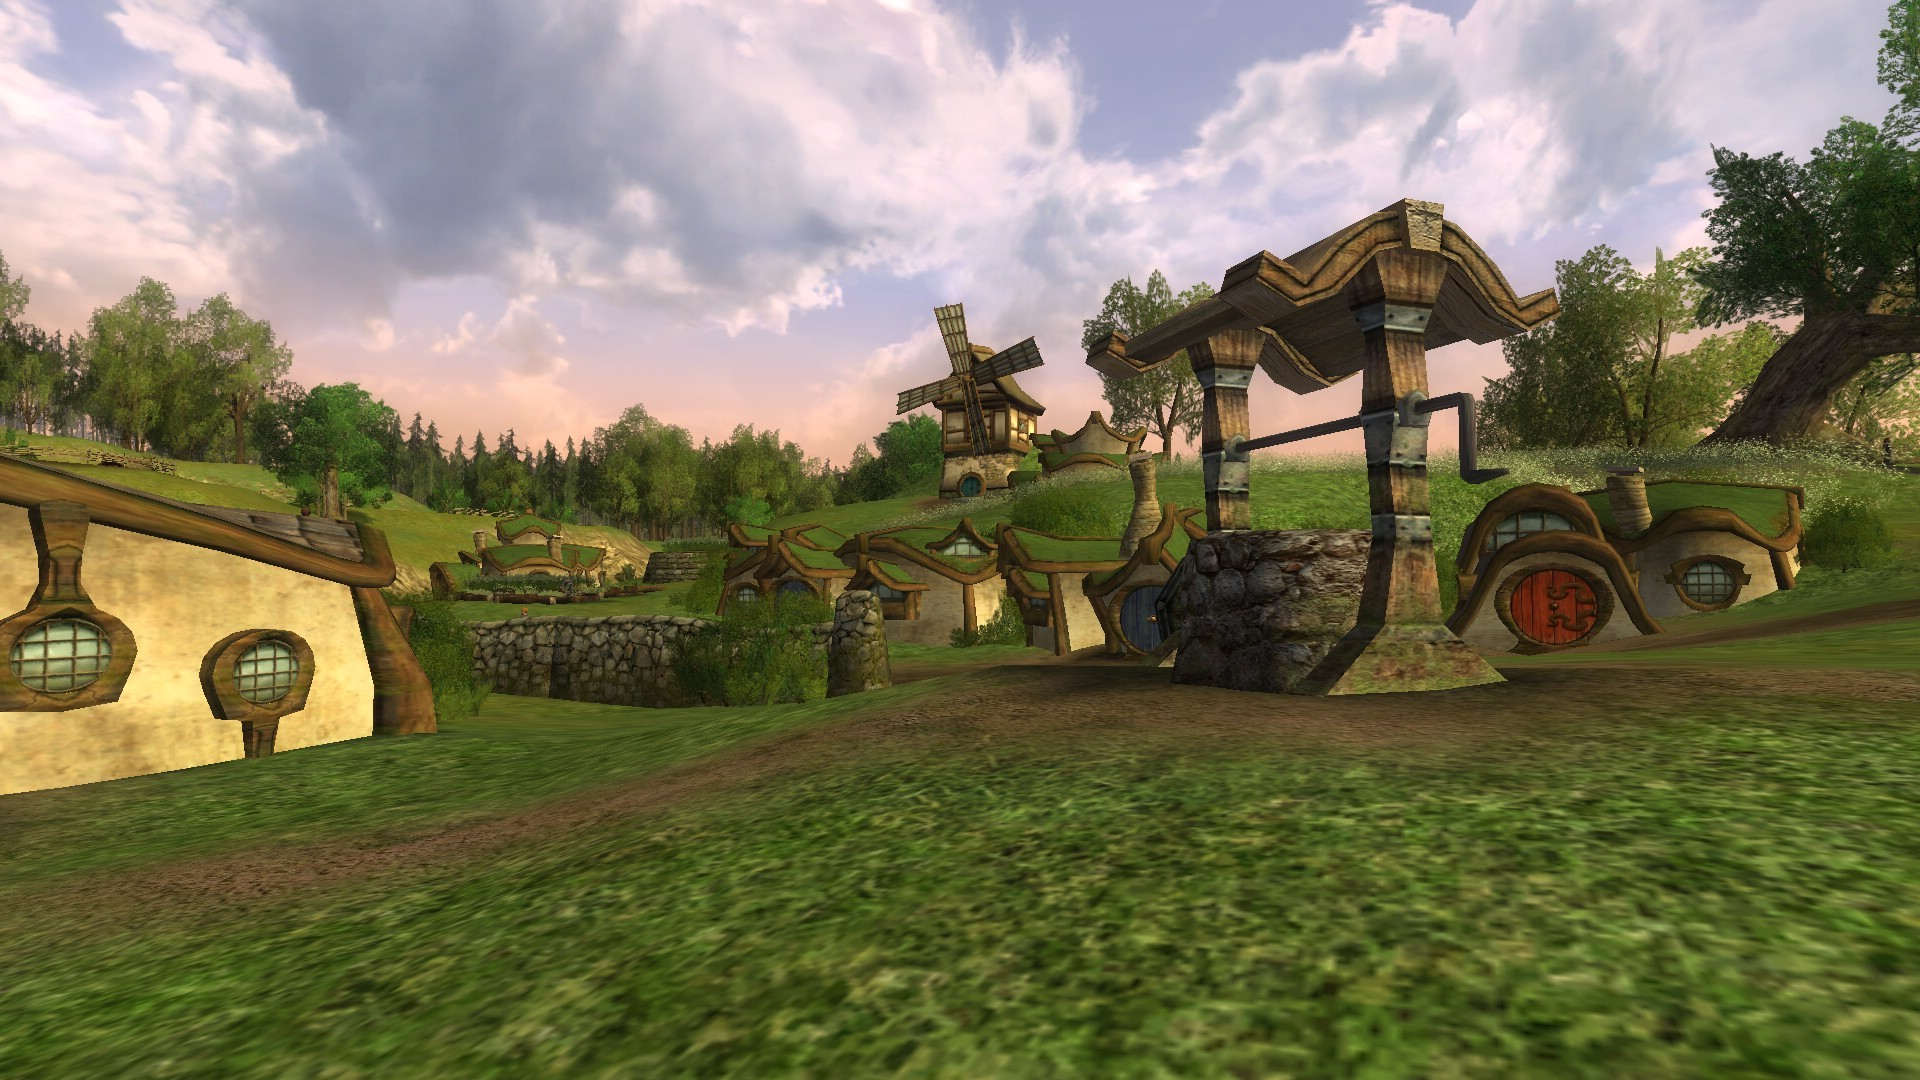 Lord of the Rings Online - Test 1, hobbiton on new laptop